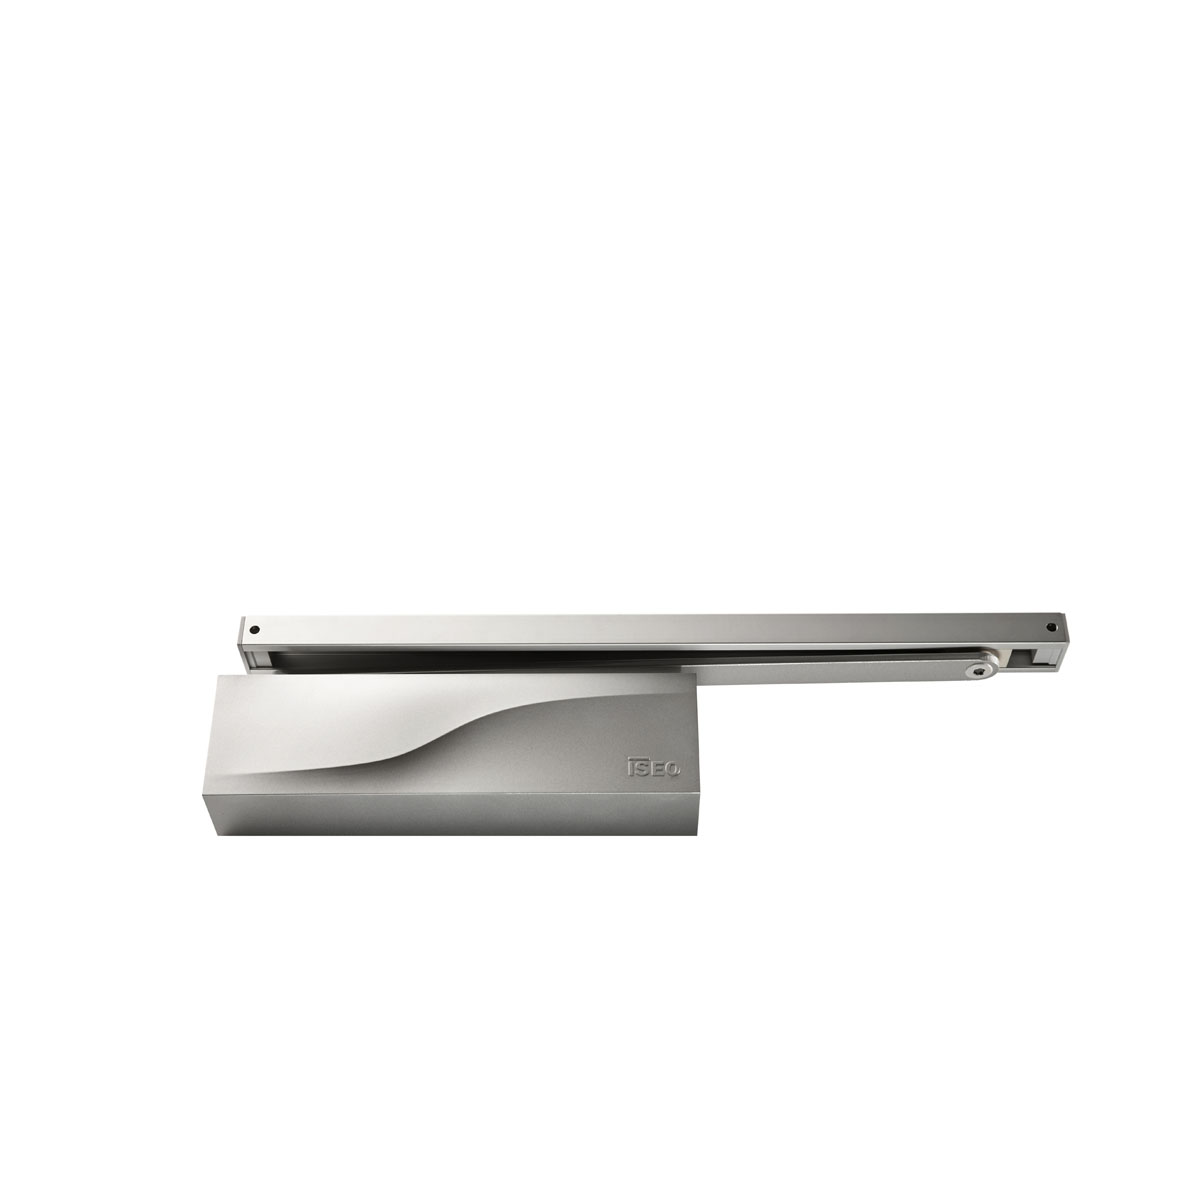 GDR Iseo IS60 Silver Door Closer